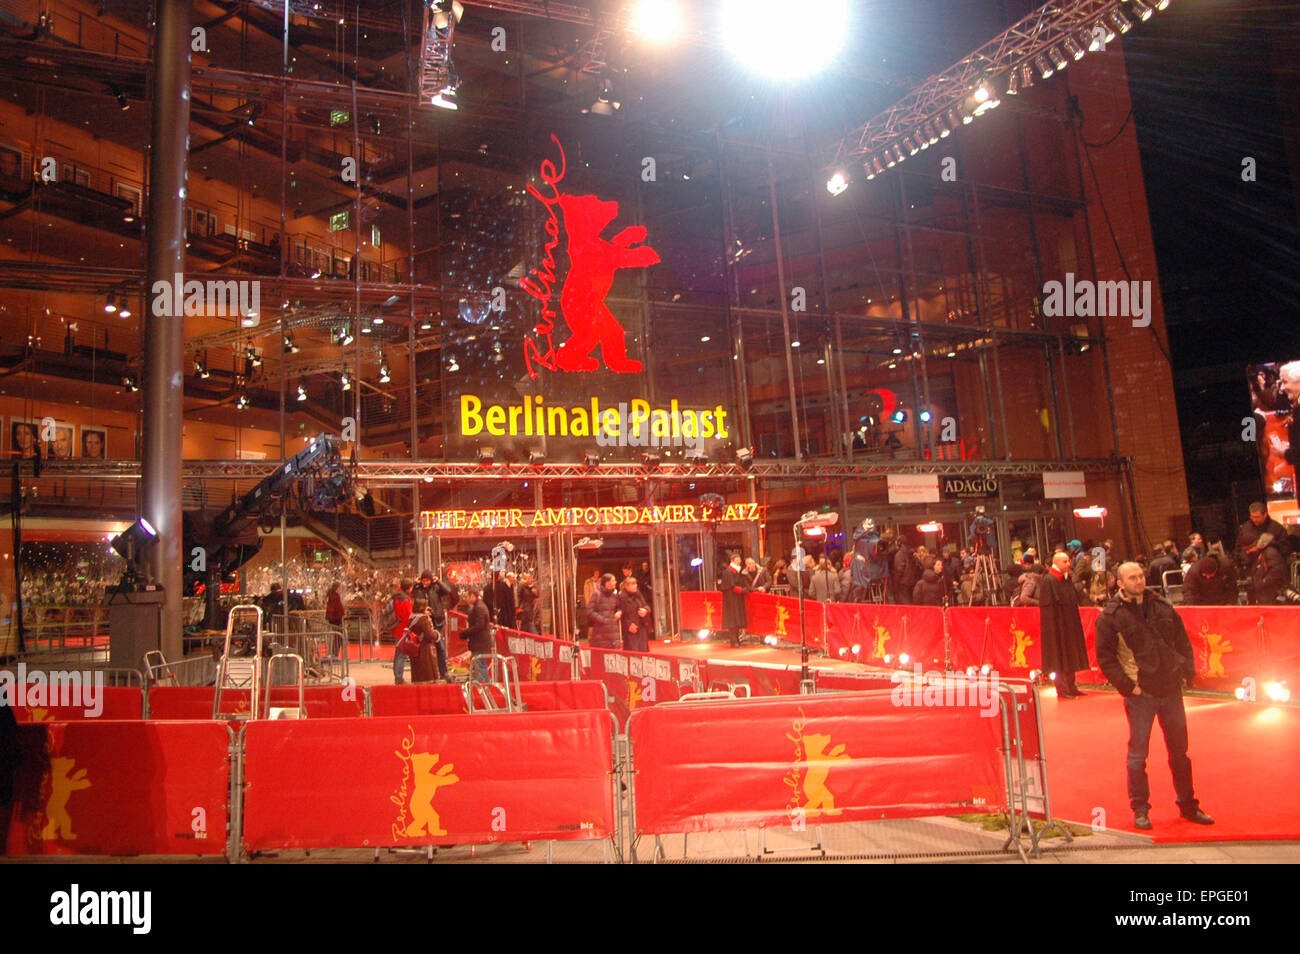 FEBRUARY 16, 2007 - BERLIN: impressiones from the Berlinale Film Festival 2007. - Stock Image